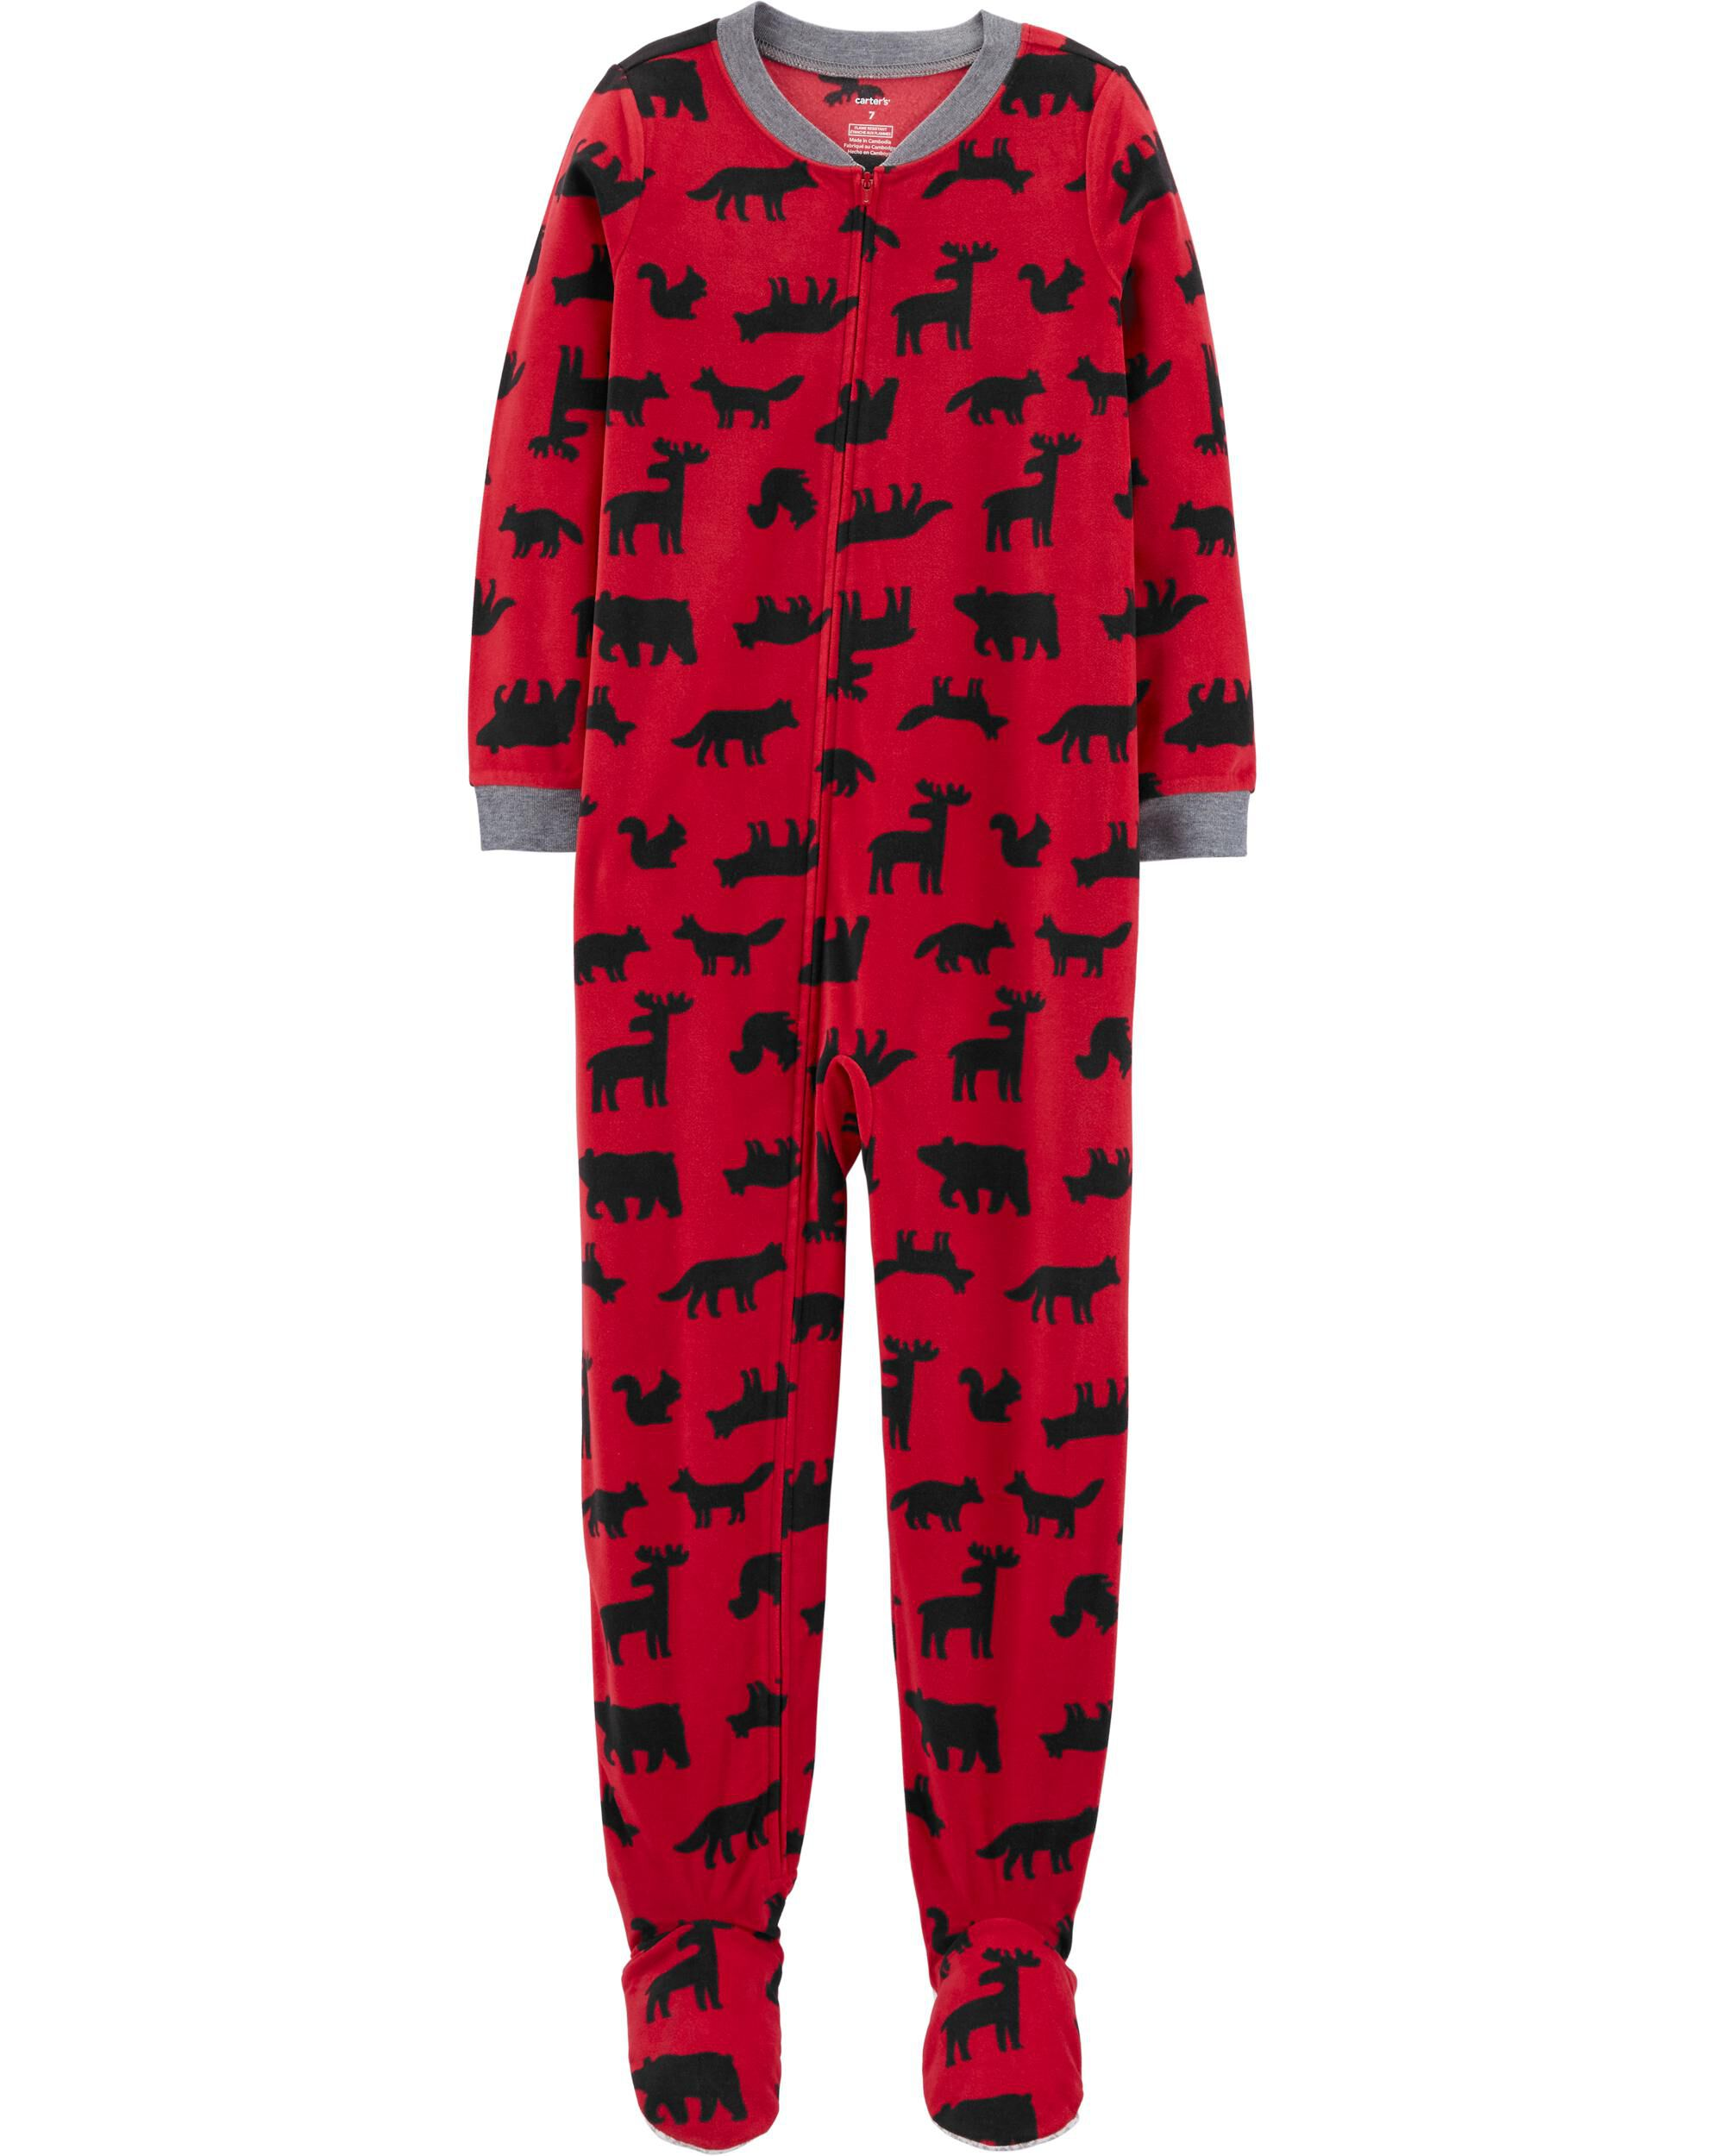 New Toddler Boy Carter/'s 1-Piece Woodland Creatures Fleece Footie PJs 3T 4T 5T